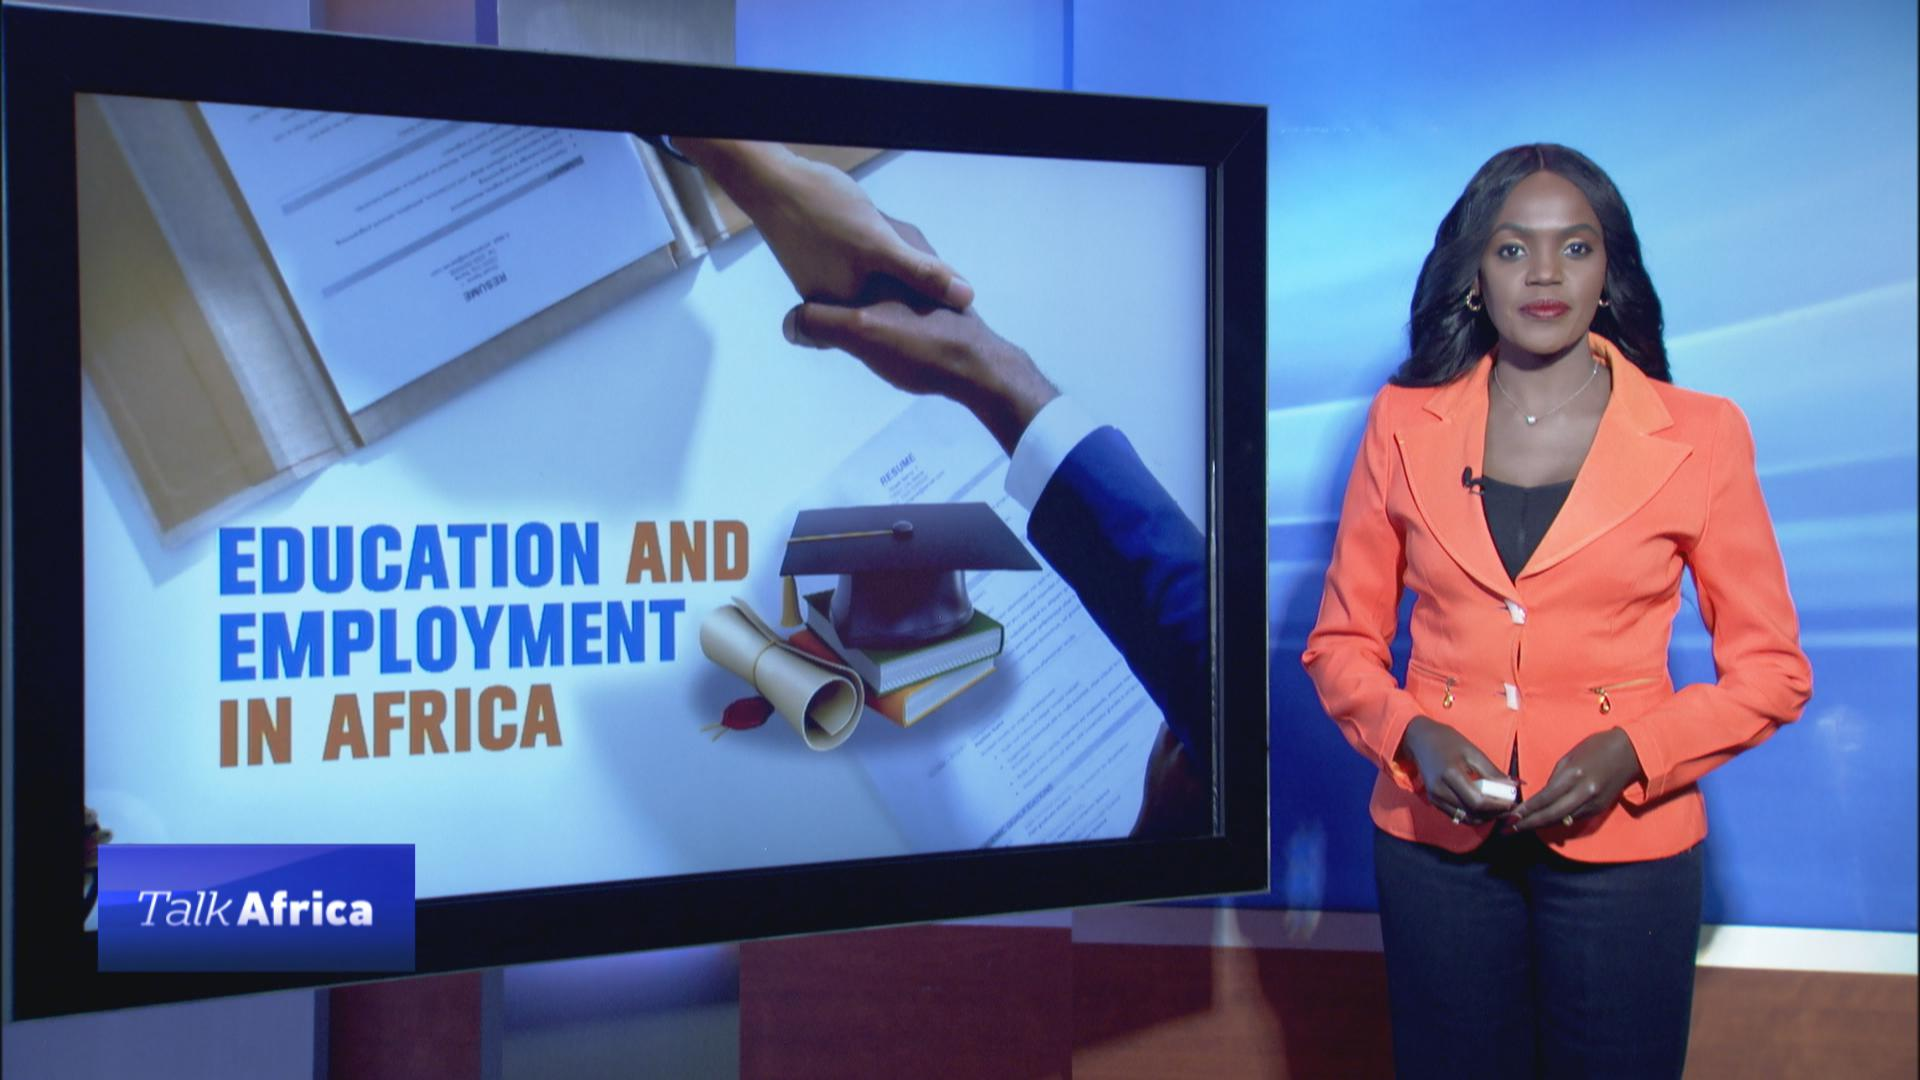 Talk Africa: Education and employment in Africa